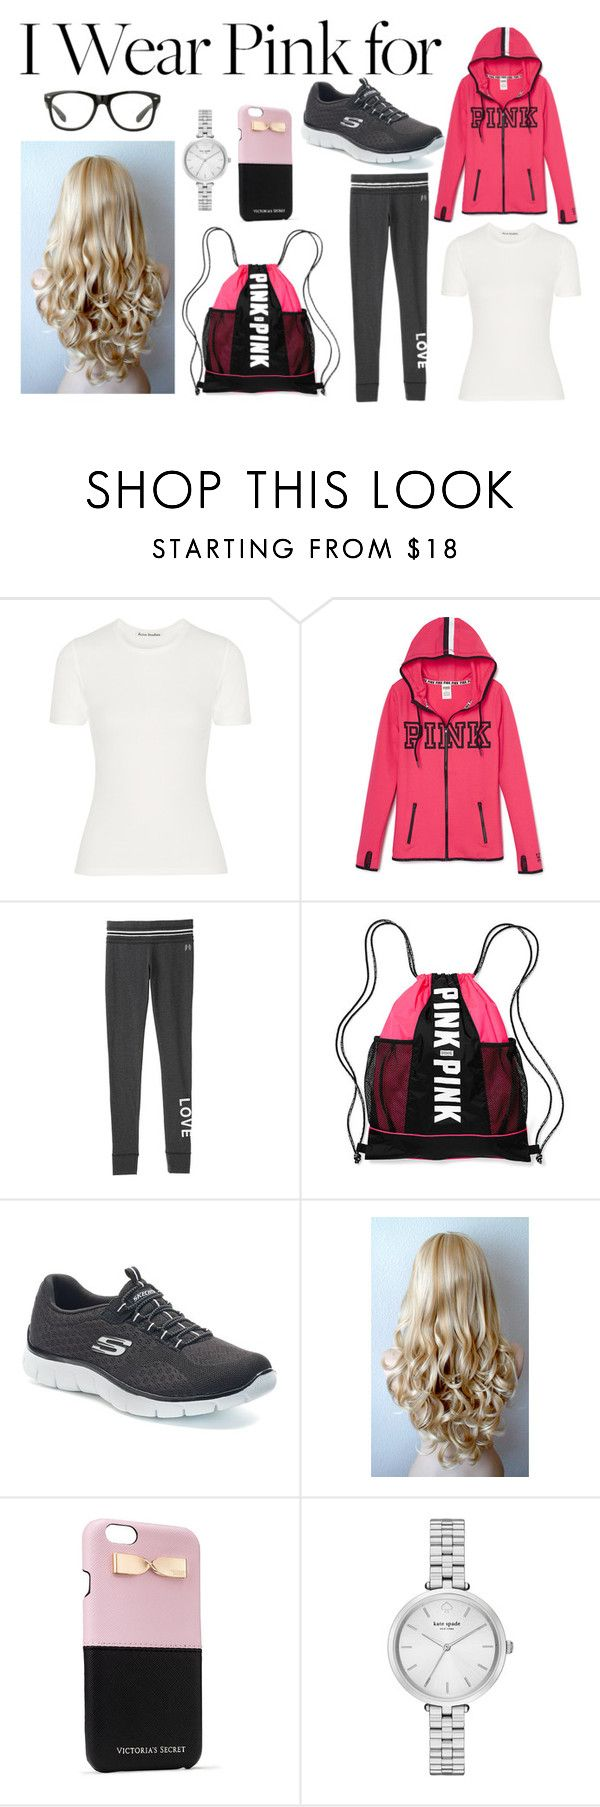 """""""Sport Style #33"""" by paola200 ❤ liked on Polyvore featuring Acne Studios, Victoria's Secret, Skechers, Capelli New York, Kate Spade and IWearPinkFor"""